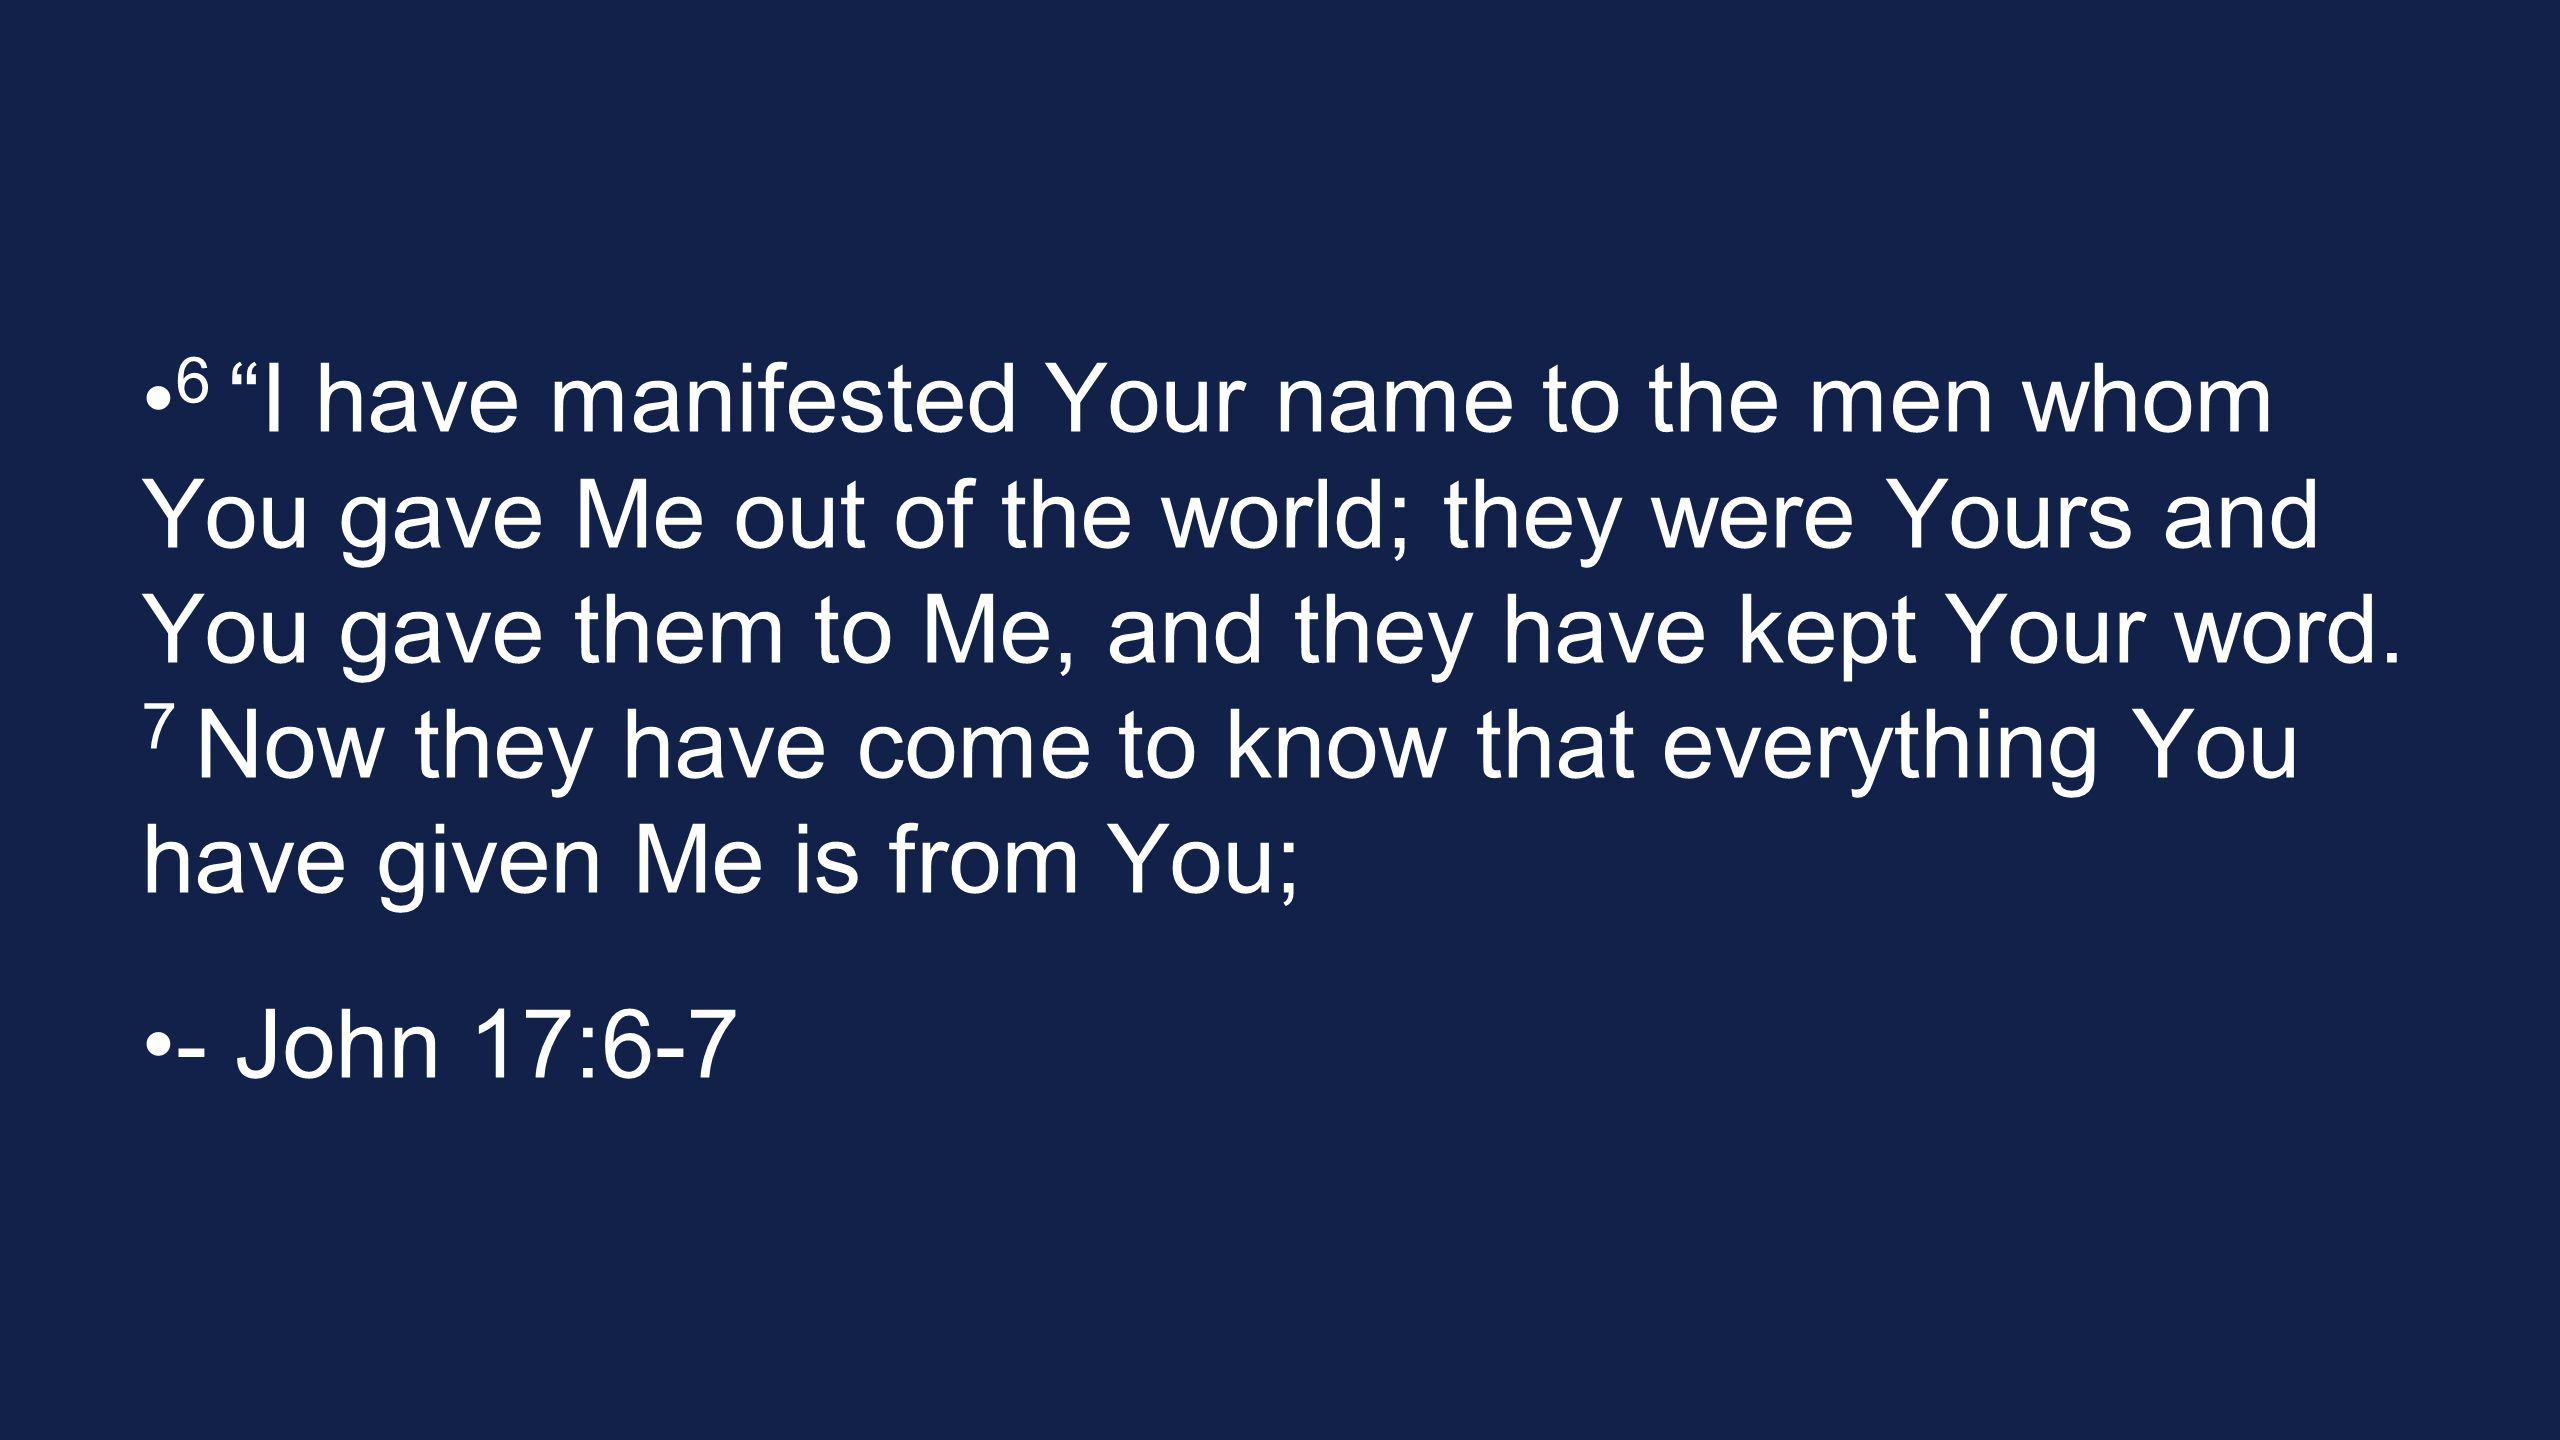 6 I have manifested Your name to the men whom You gave Me out of the world; they were Yours and You gave them to Me, and they have kept Your word. 7 Now they have come to know that everything You have given Me is from You;